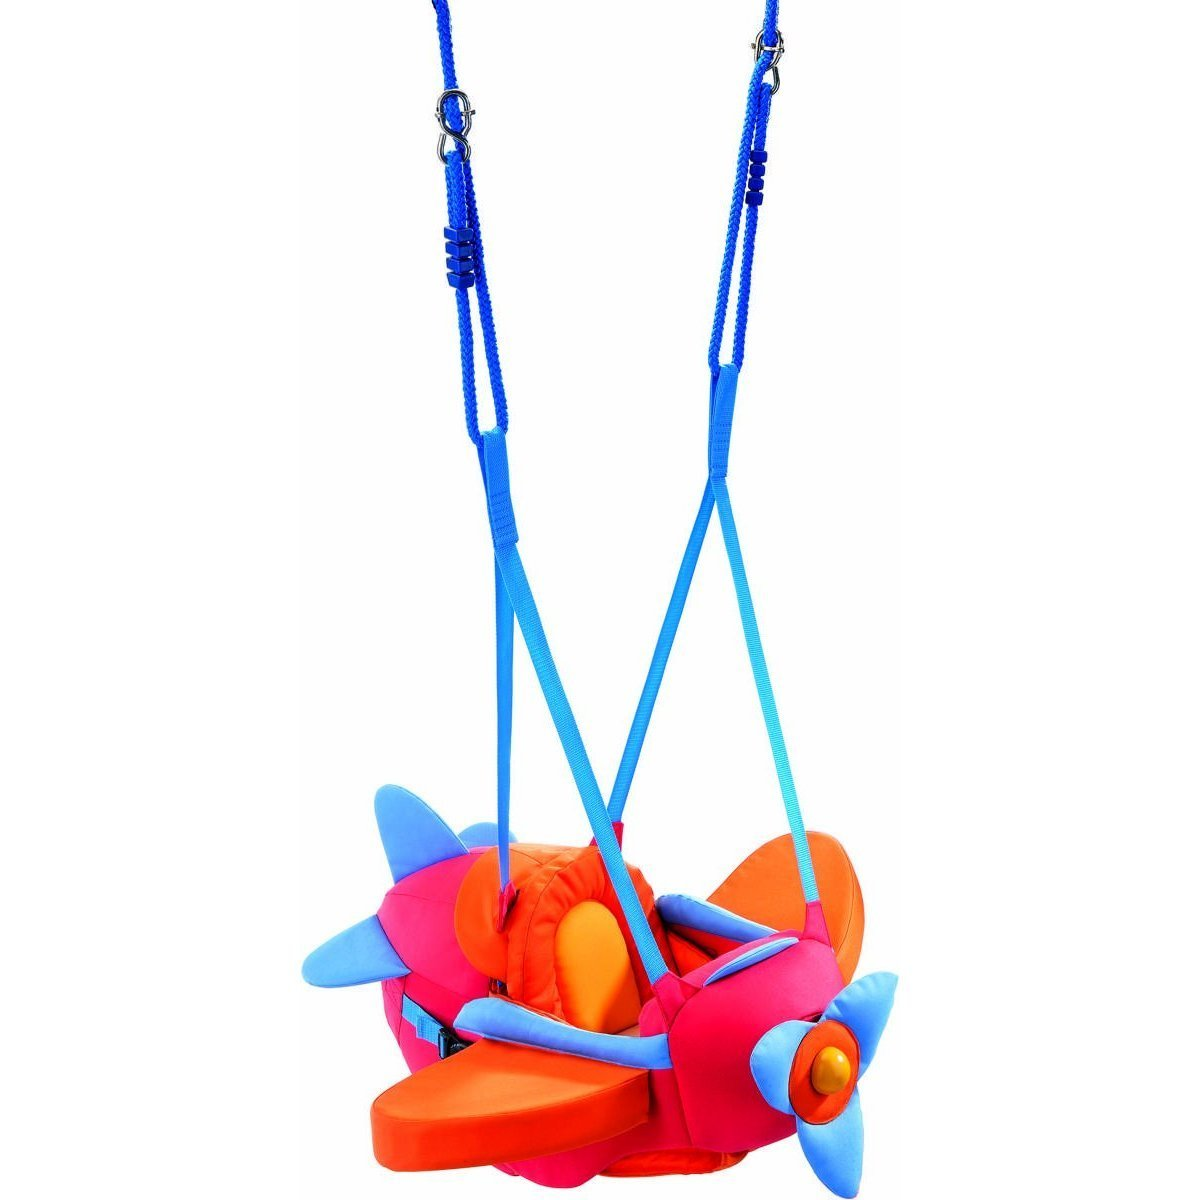 Haba Aircraft Baby Swing 21 Of The Best Holiday Gifts